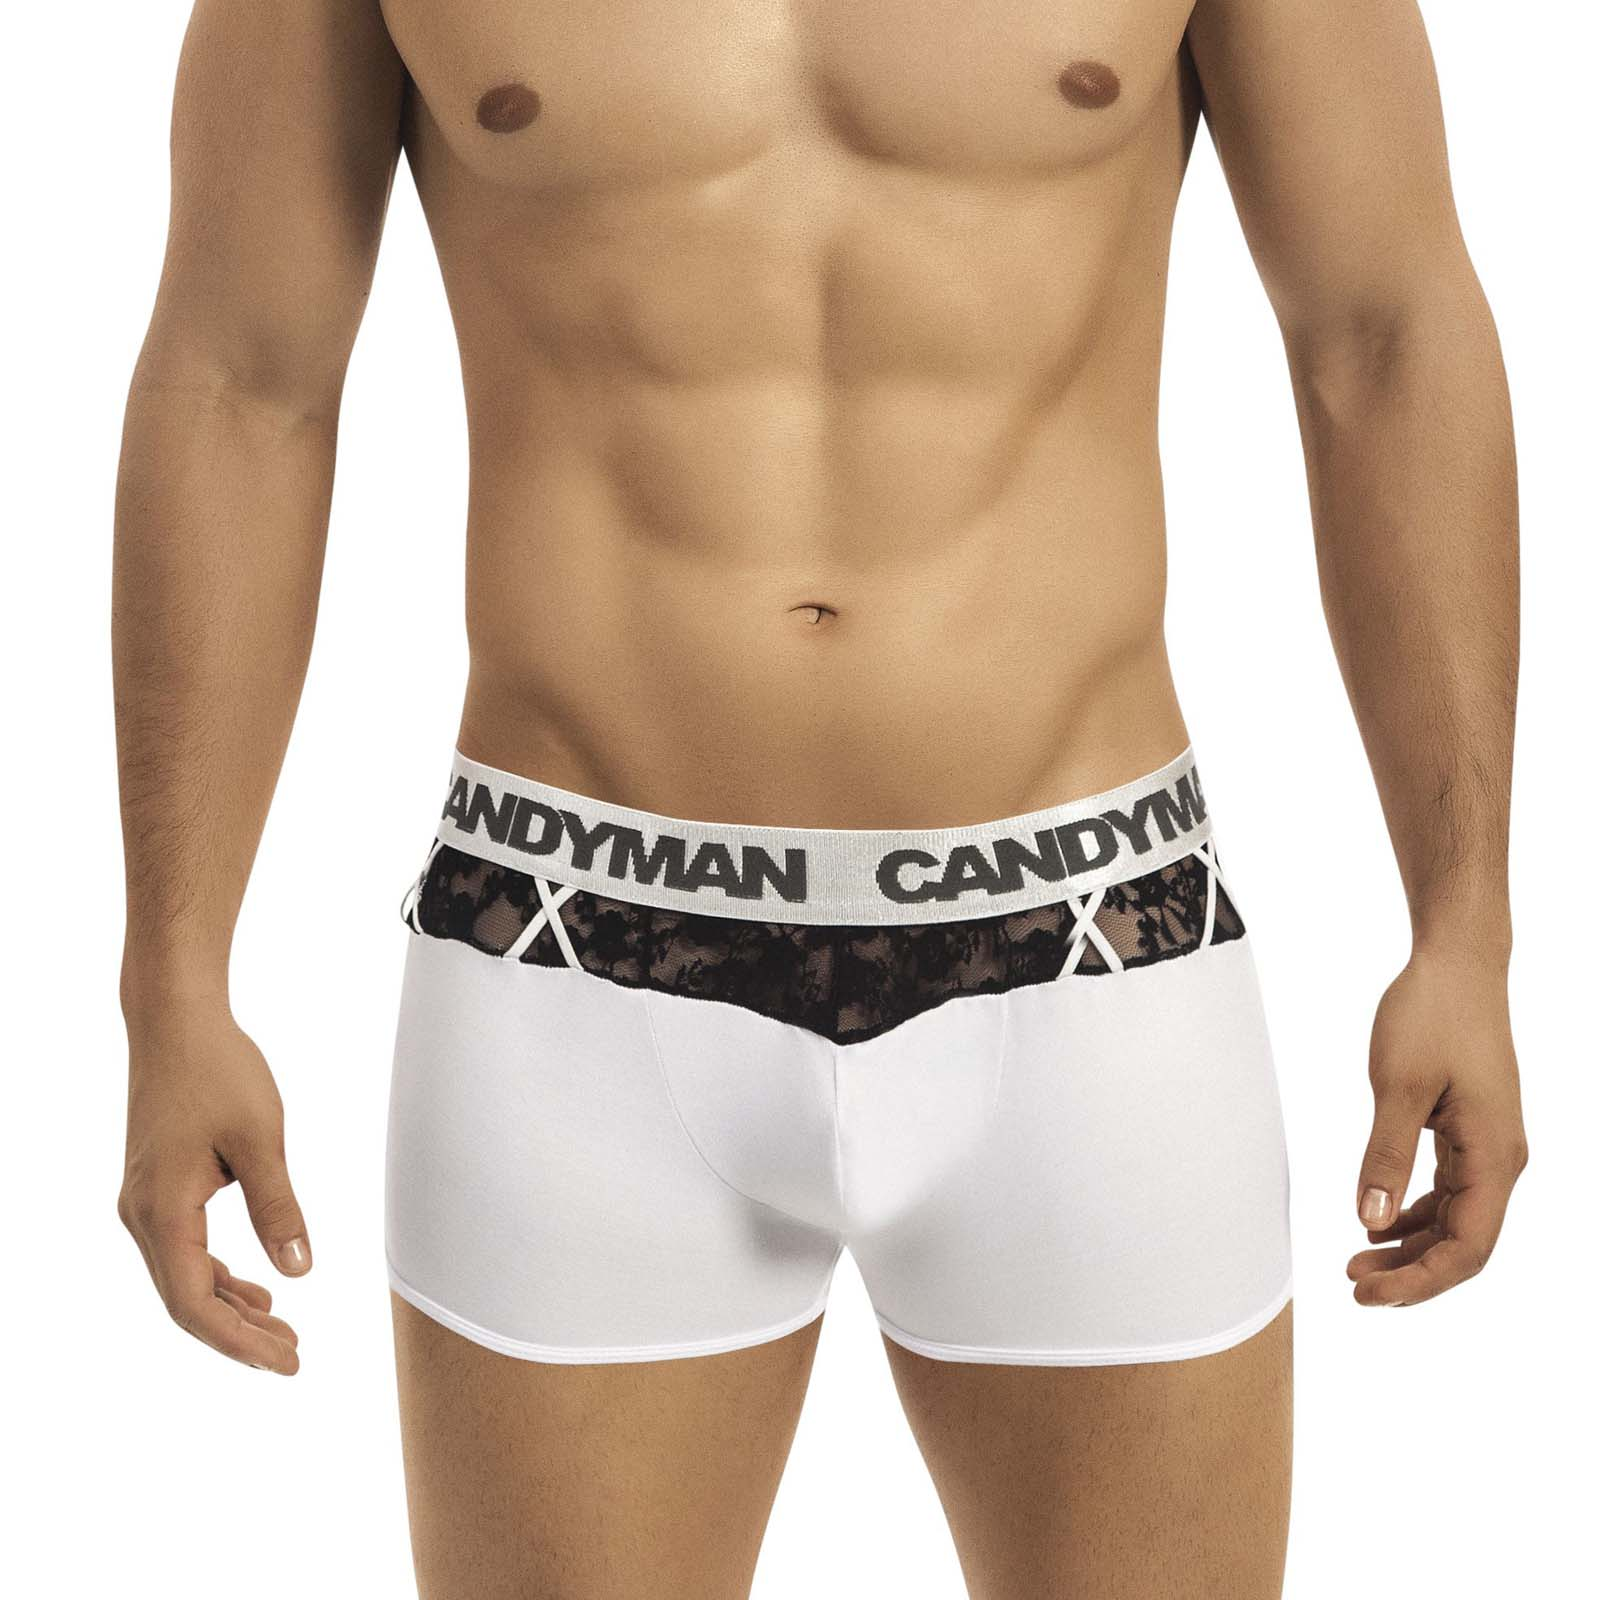 Boxer Brief Candyman 99052